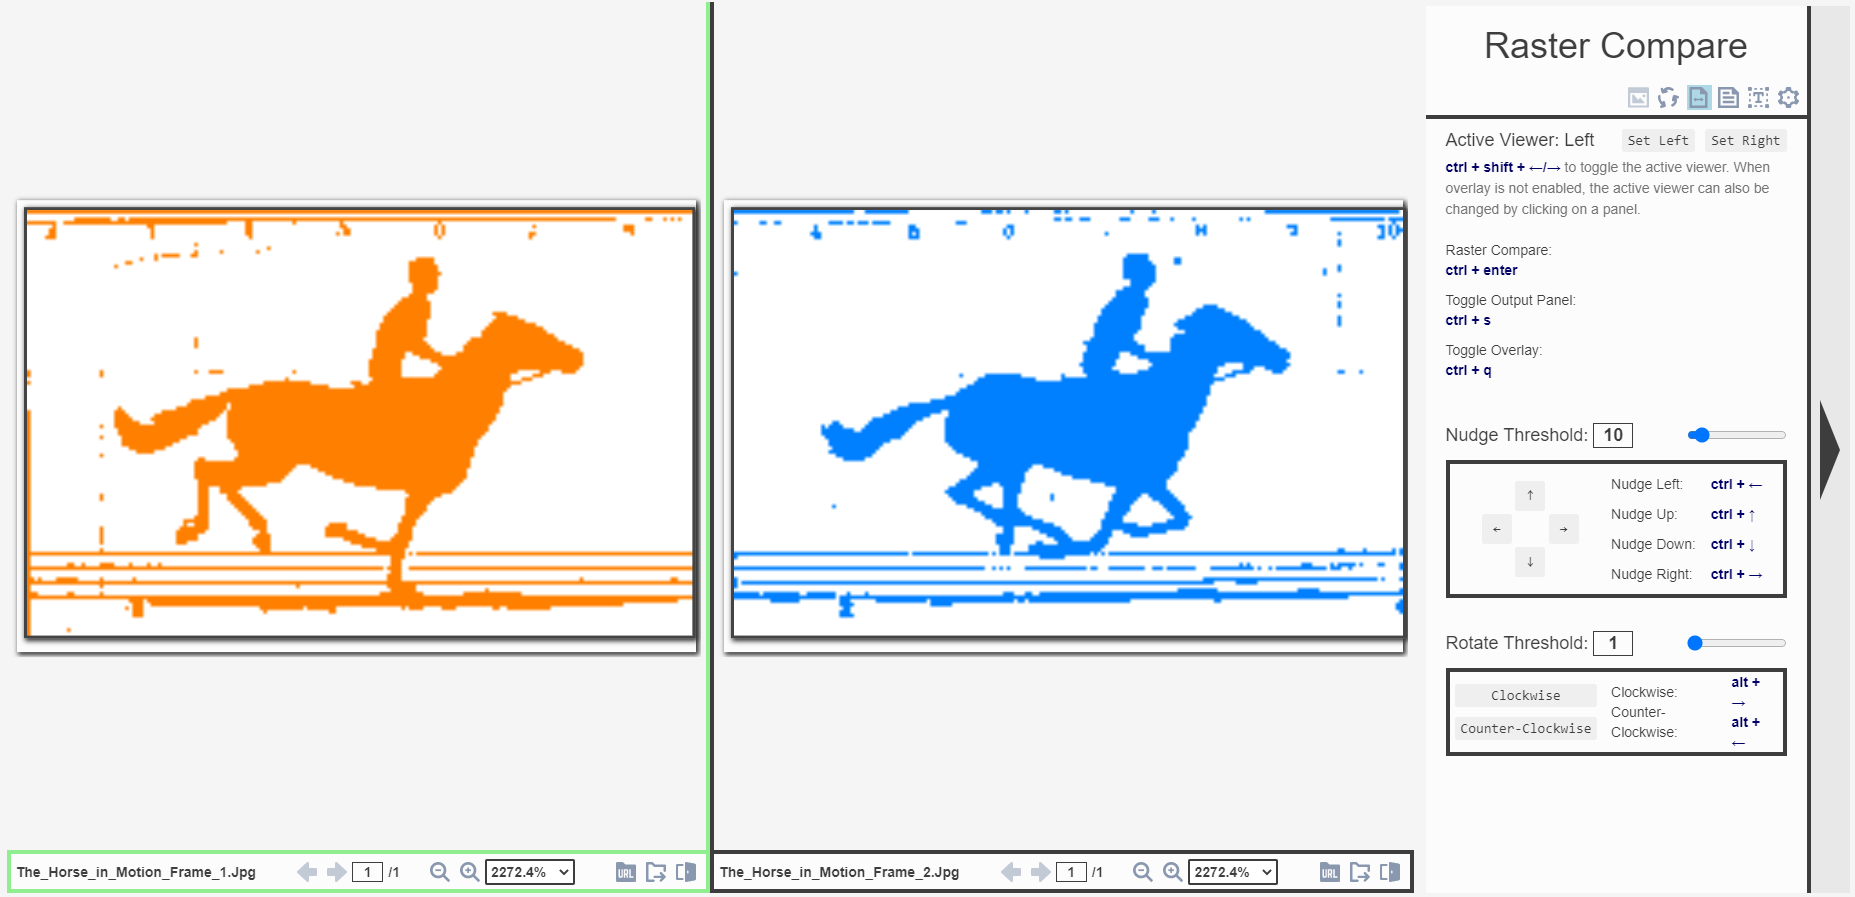 HorseInMotionFrames1And2